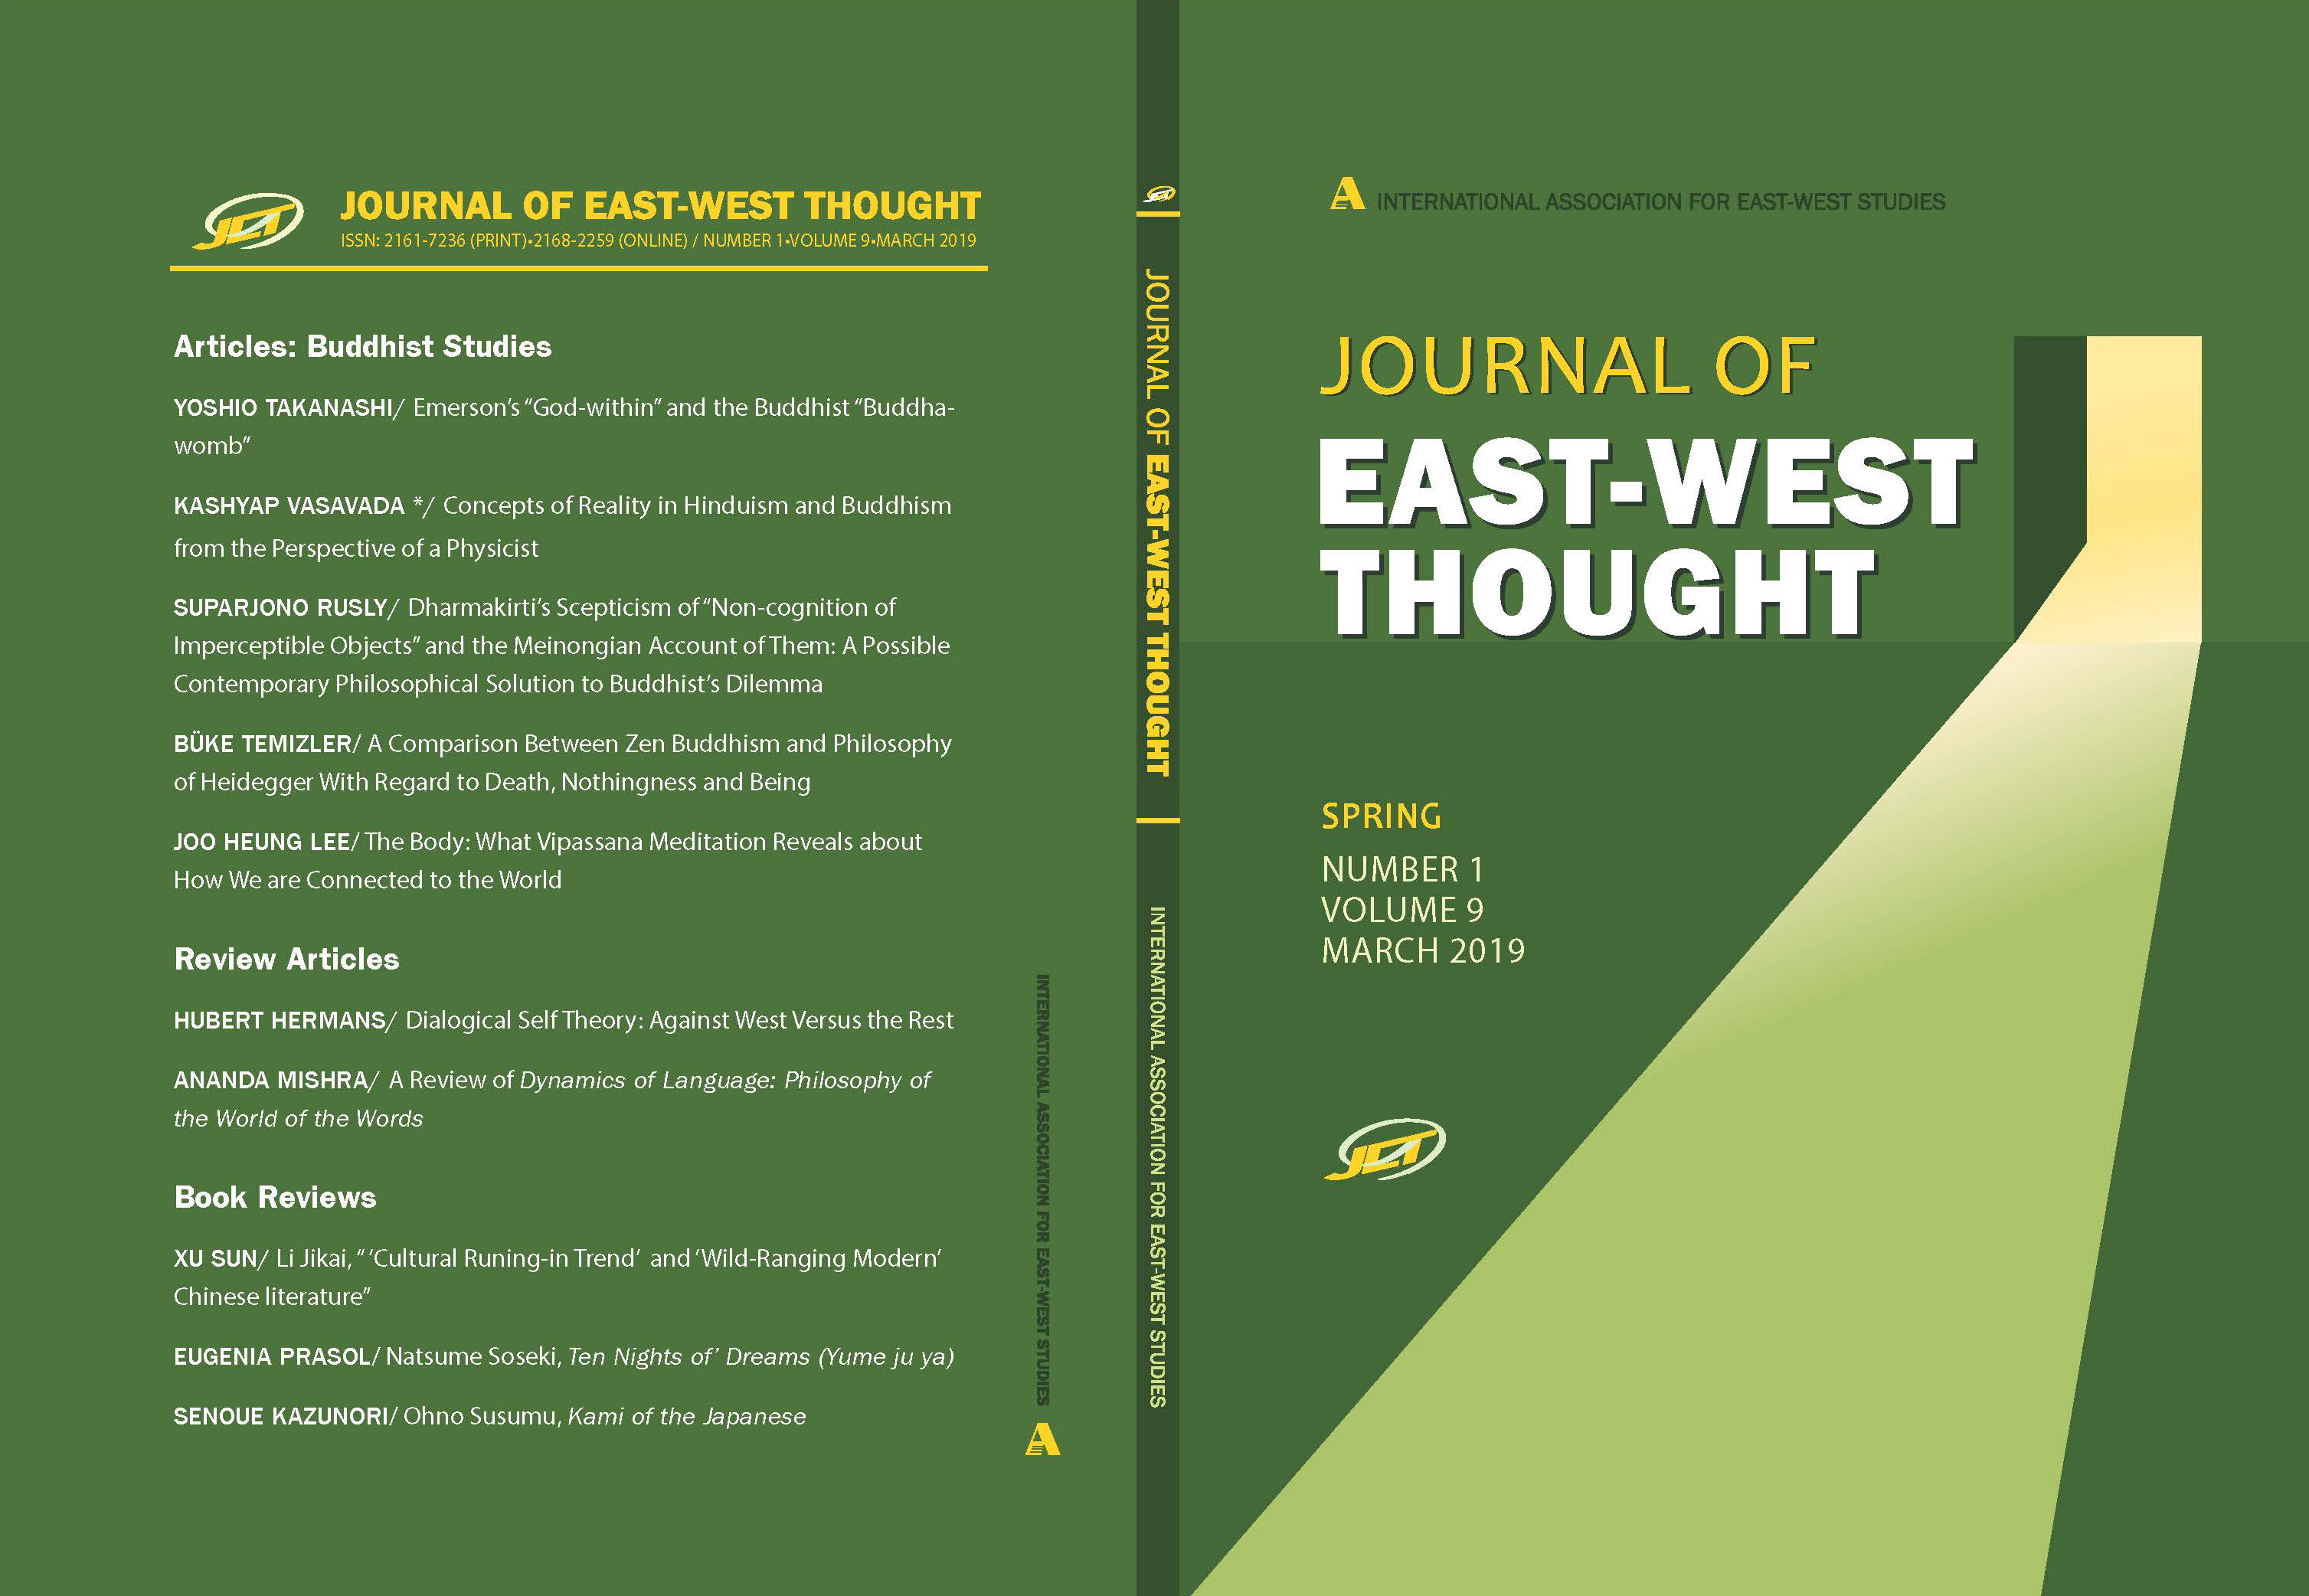 Front and back cover of the Journal of East West Thought Volume 9, Number 1, 2019